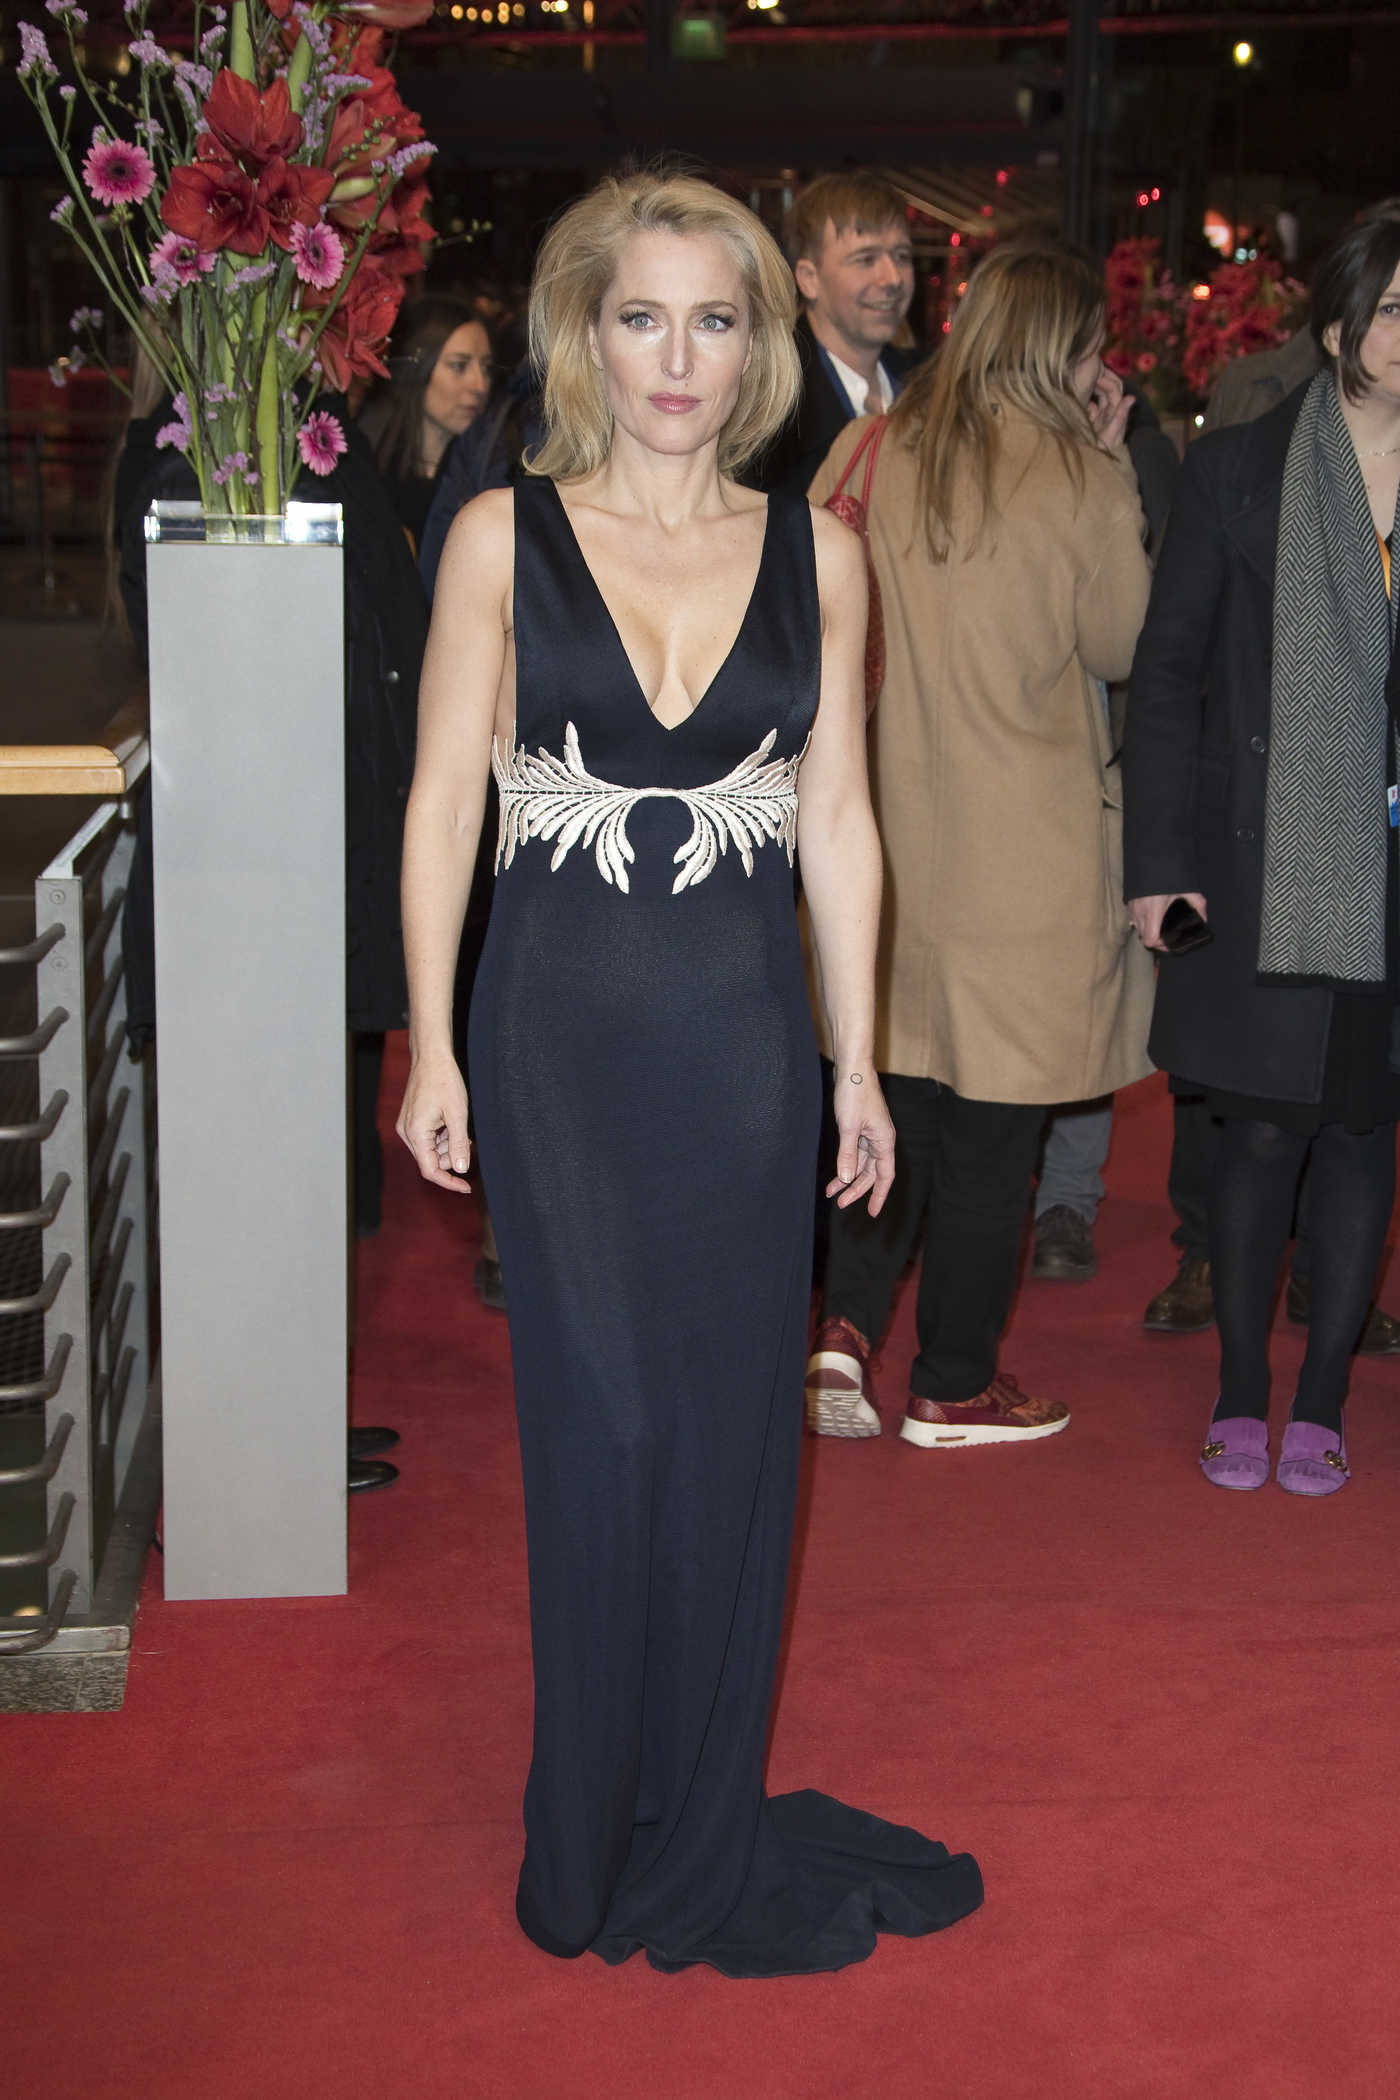 Gillian Anderson at the Viceroy's House Premiere During the 67th Berlinale International Film Festival in Berlin 02/12/2017